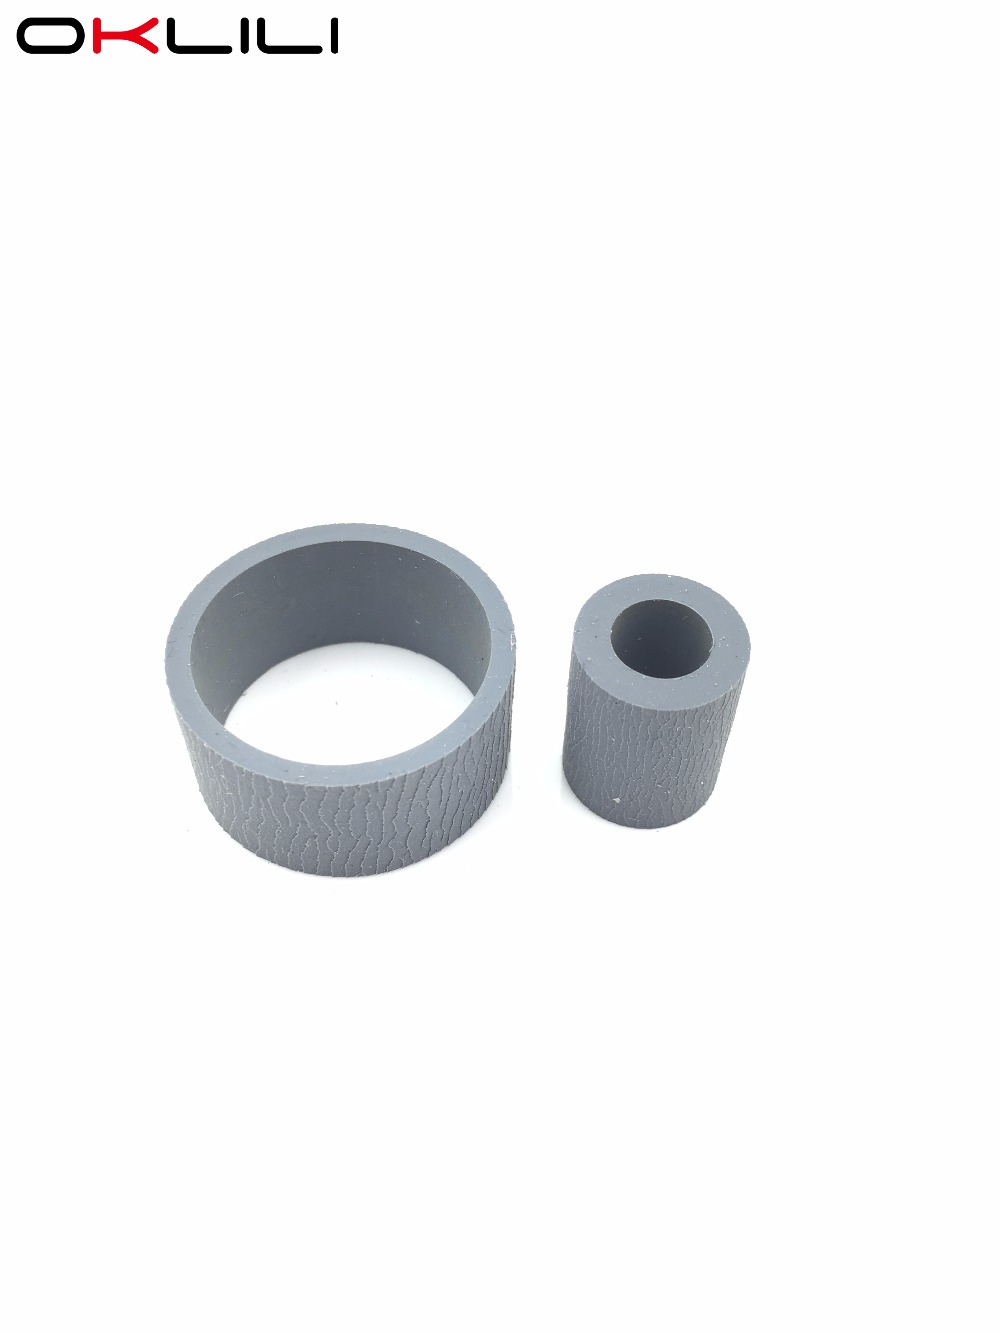 5X RETARD SUB PICK ASSY Feed Pickup Roller for Epson ME10 L110 L111 L120 L130 L210 L220 L211 L300 L301 L303 L310 L350 L351 L353 футболка женская insight feed me te rose dust